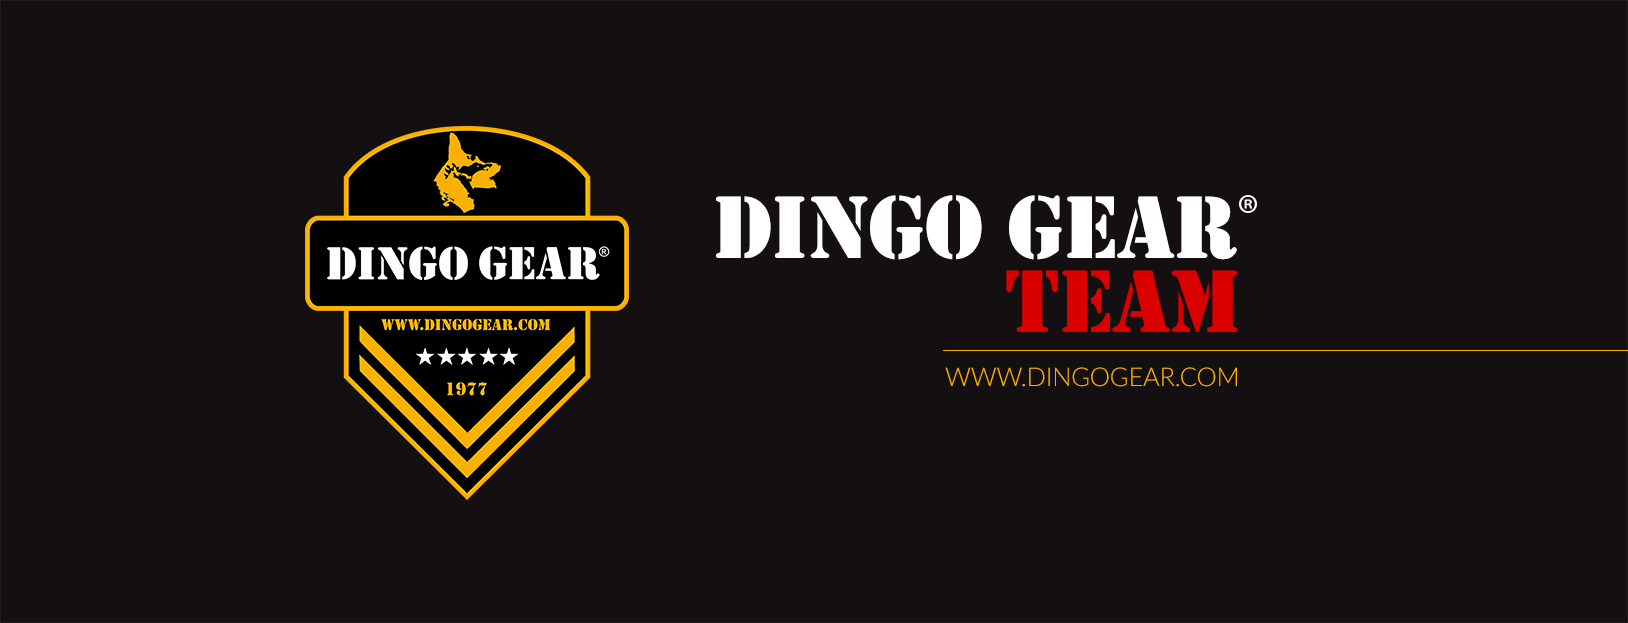 Dingo Gear Team